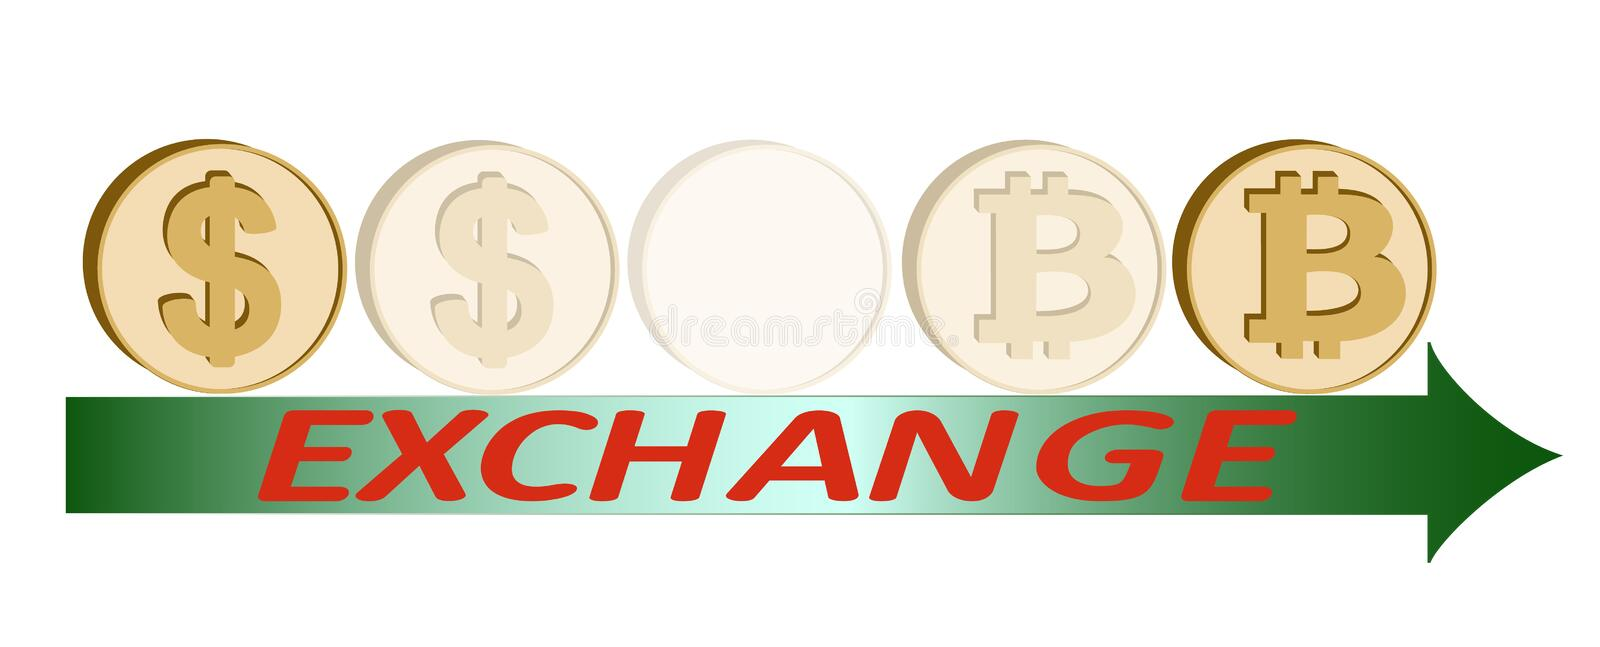 Exchange dollar to bitcoin coin ,design concept royalty free illustration